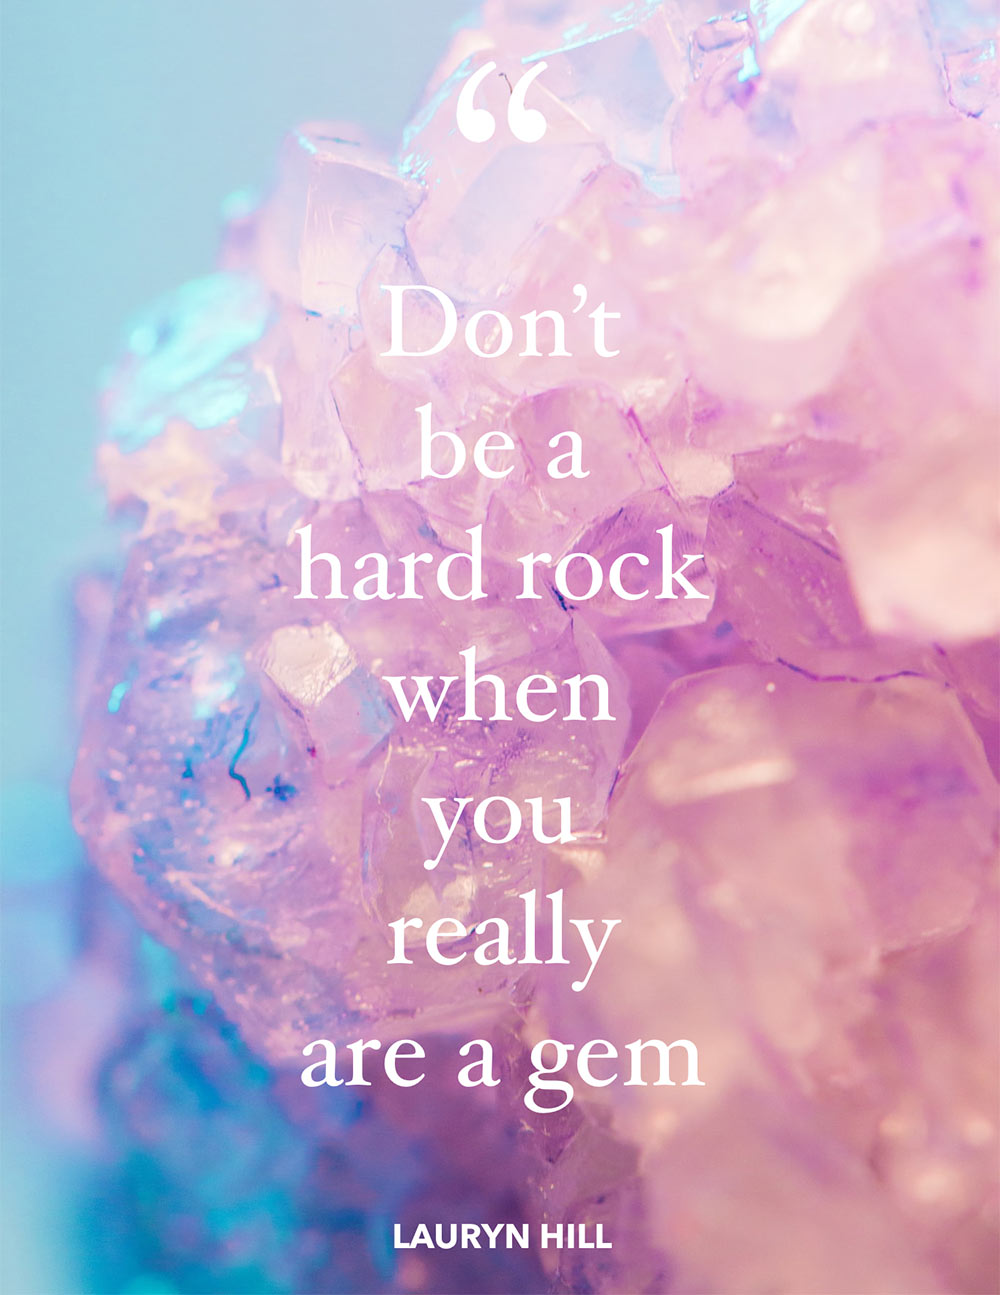 you really are a gem